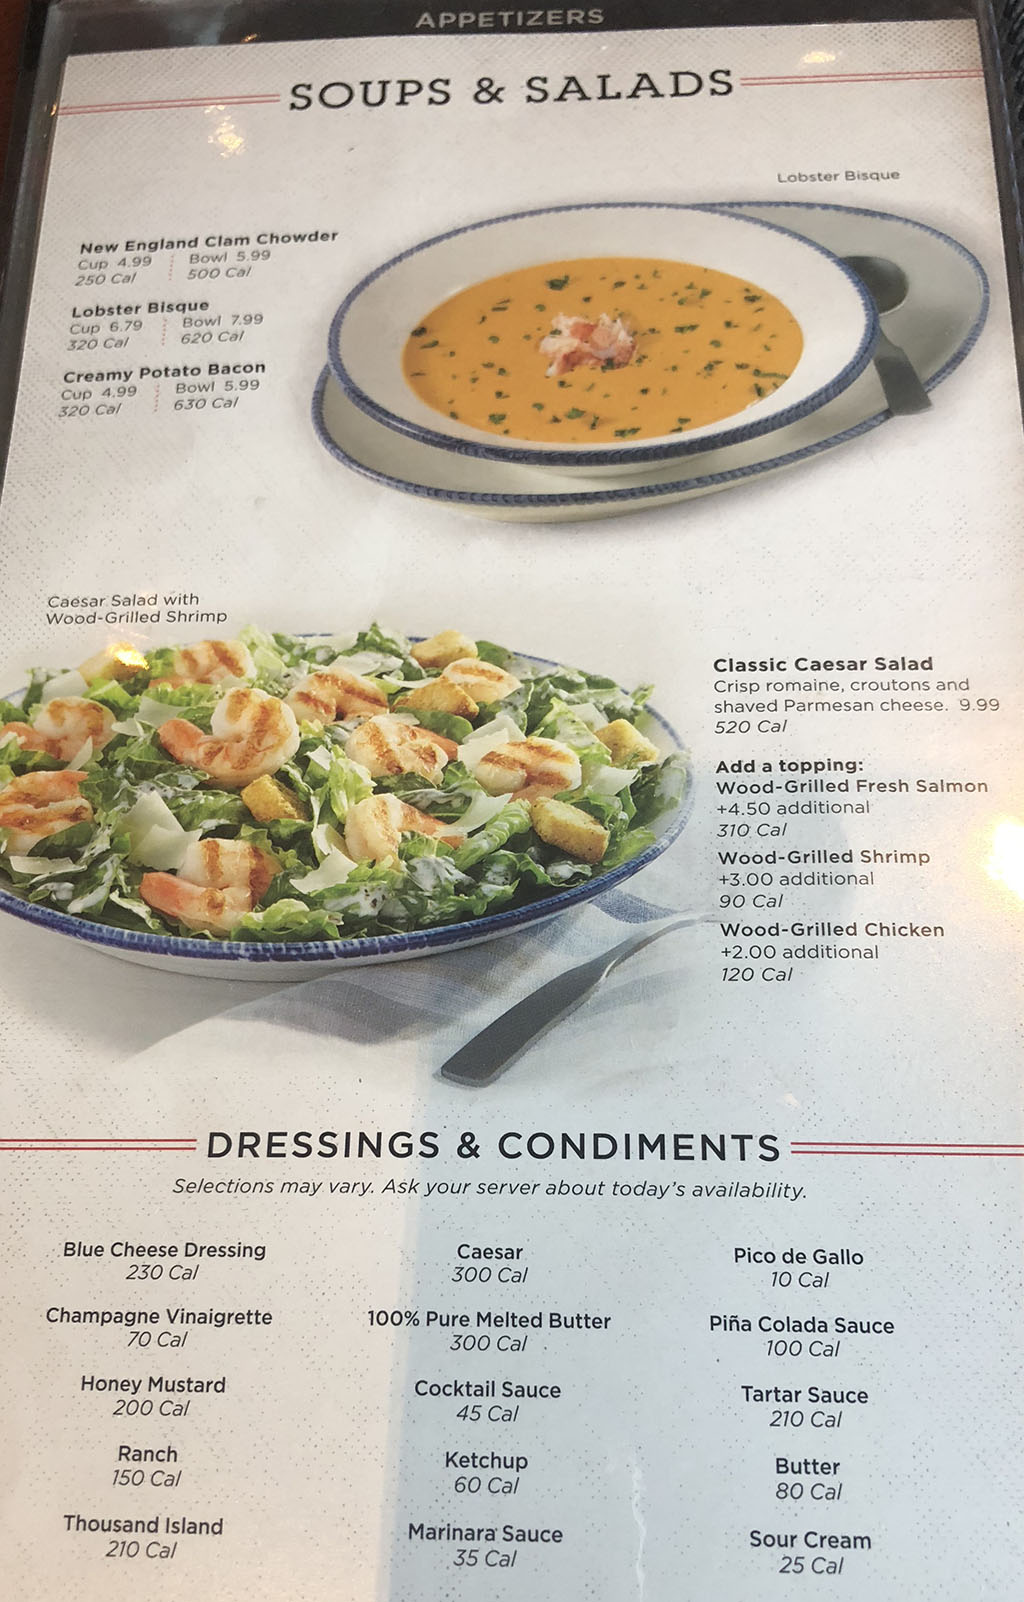 Red Lobster menu - appetizers - soups, salads, dressings, condiments